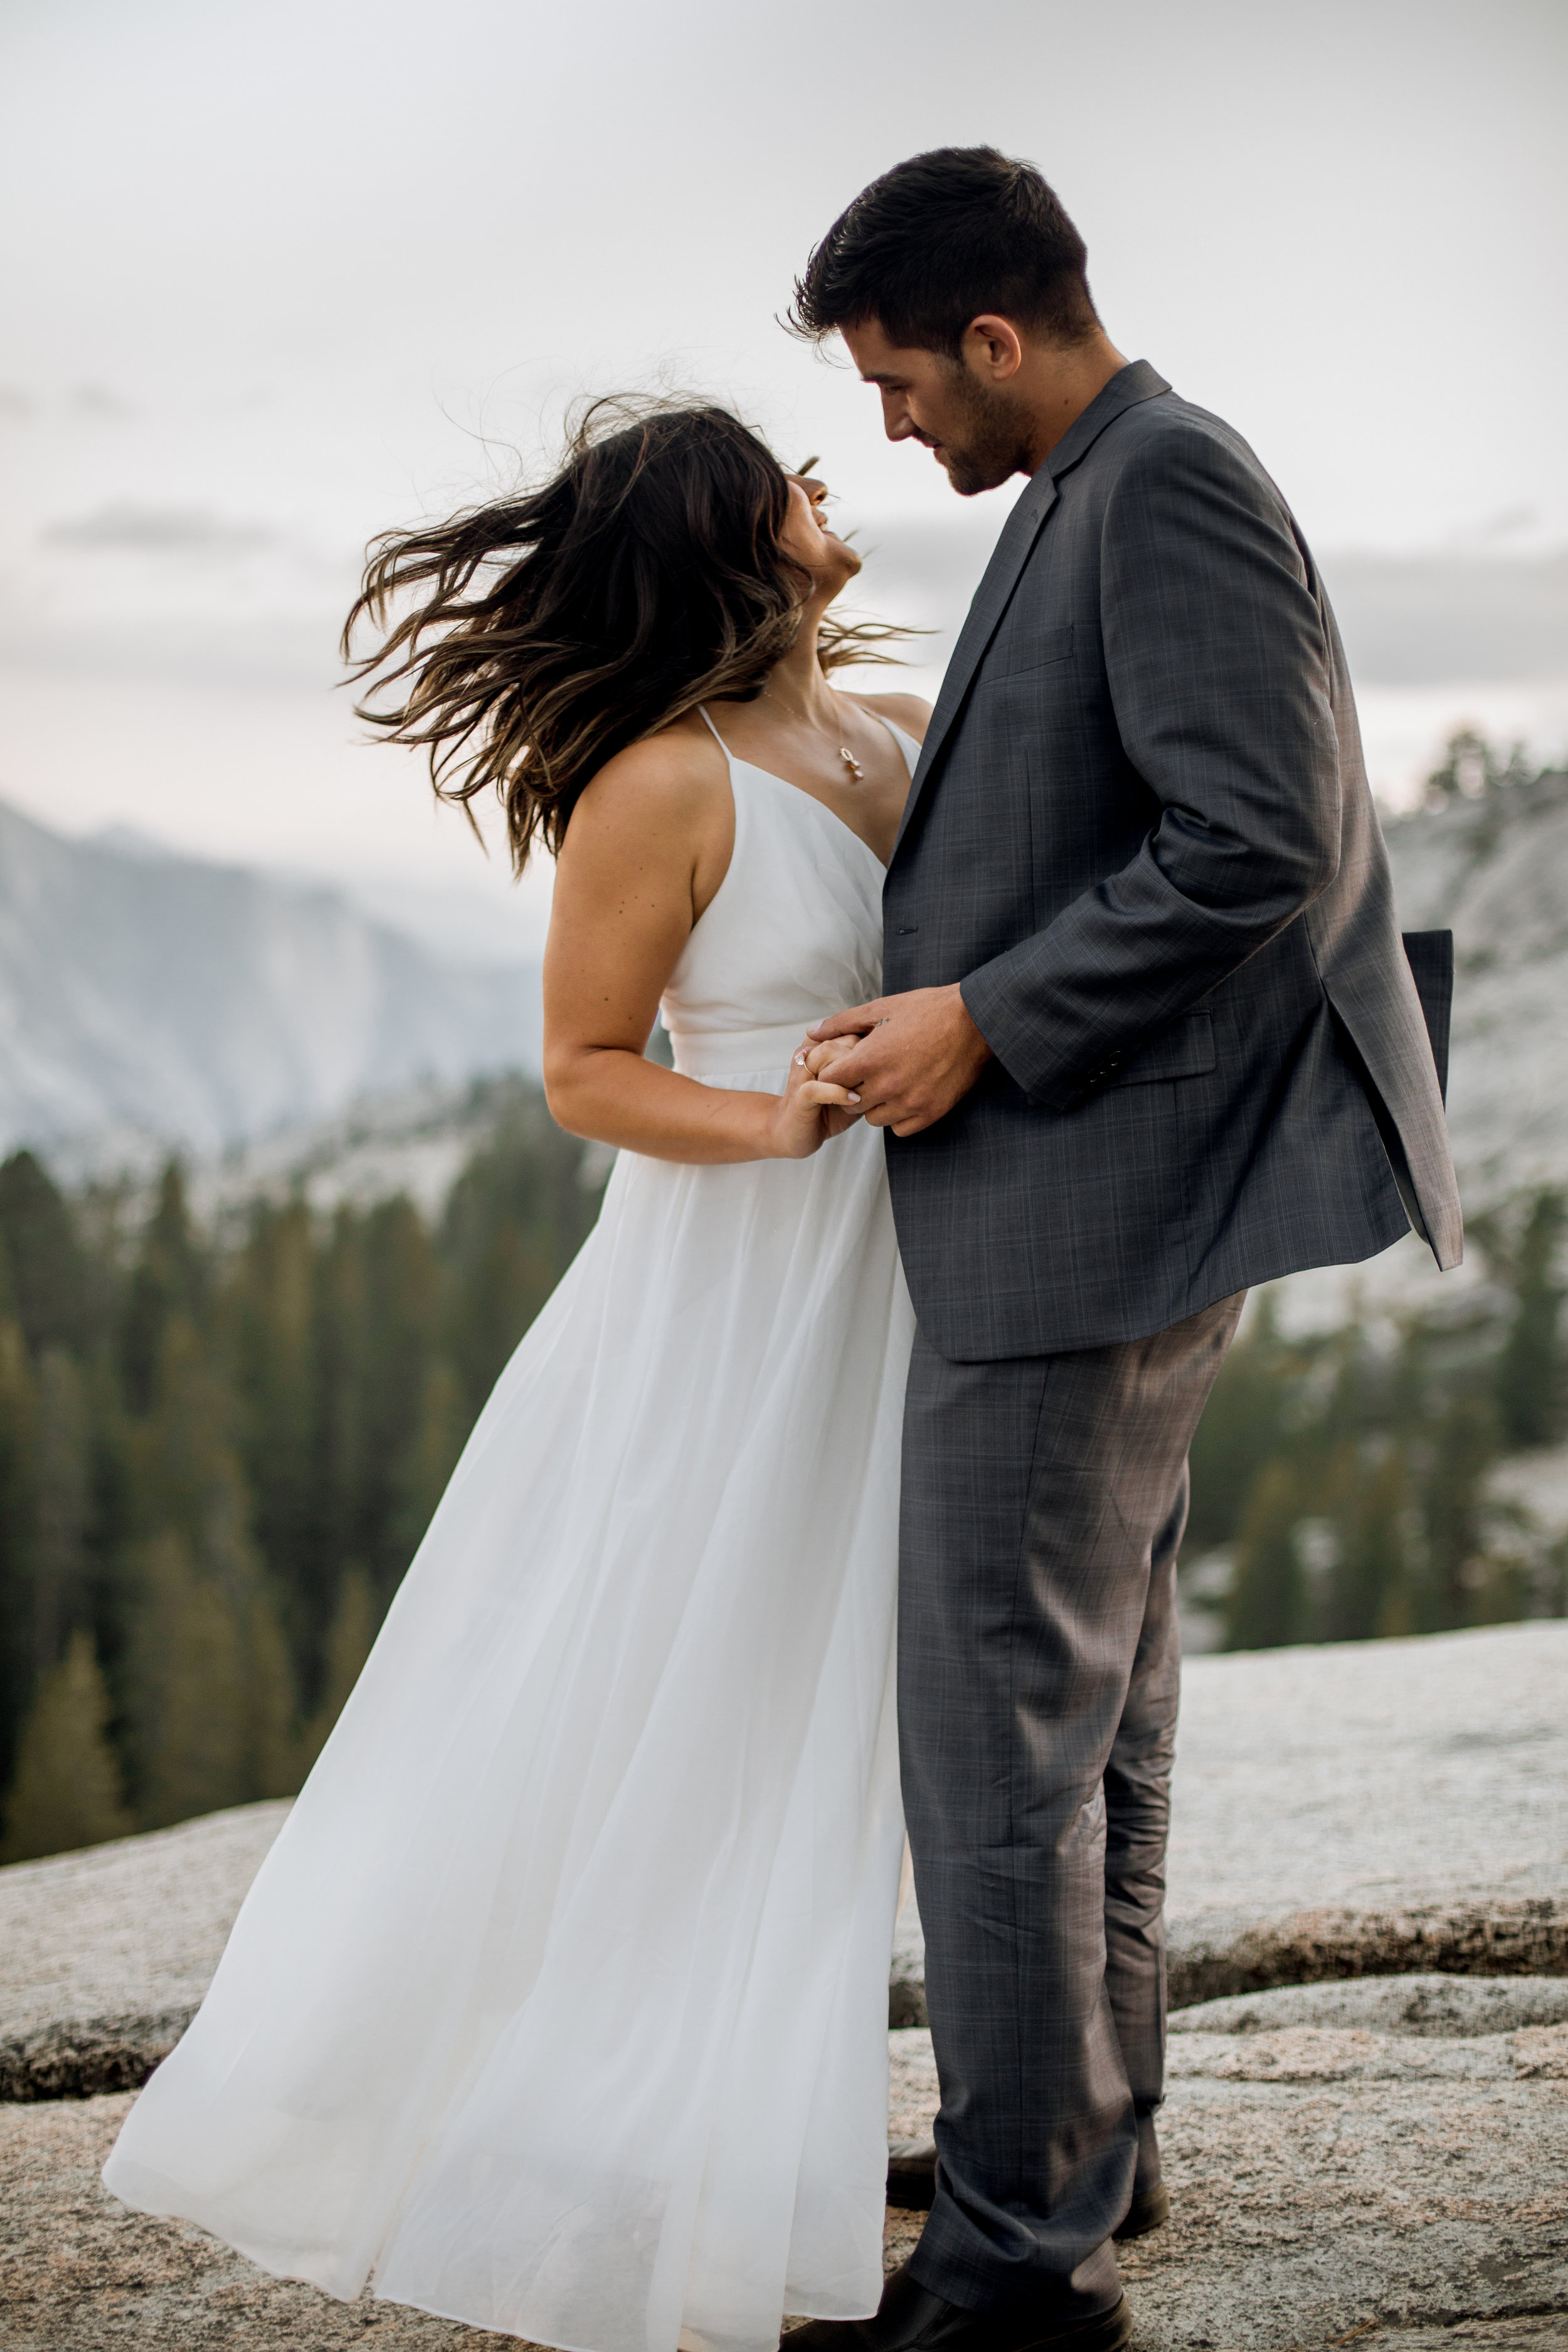 nicole-daacke-photography-yosemite-national-park-fall-elopement-adventurous-free-spirit-boho-bohemian-elopement-olmsted-point-yosemite-california-elope-adventure-elopement-photographer-9.jpg